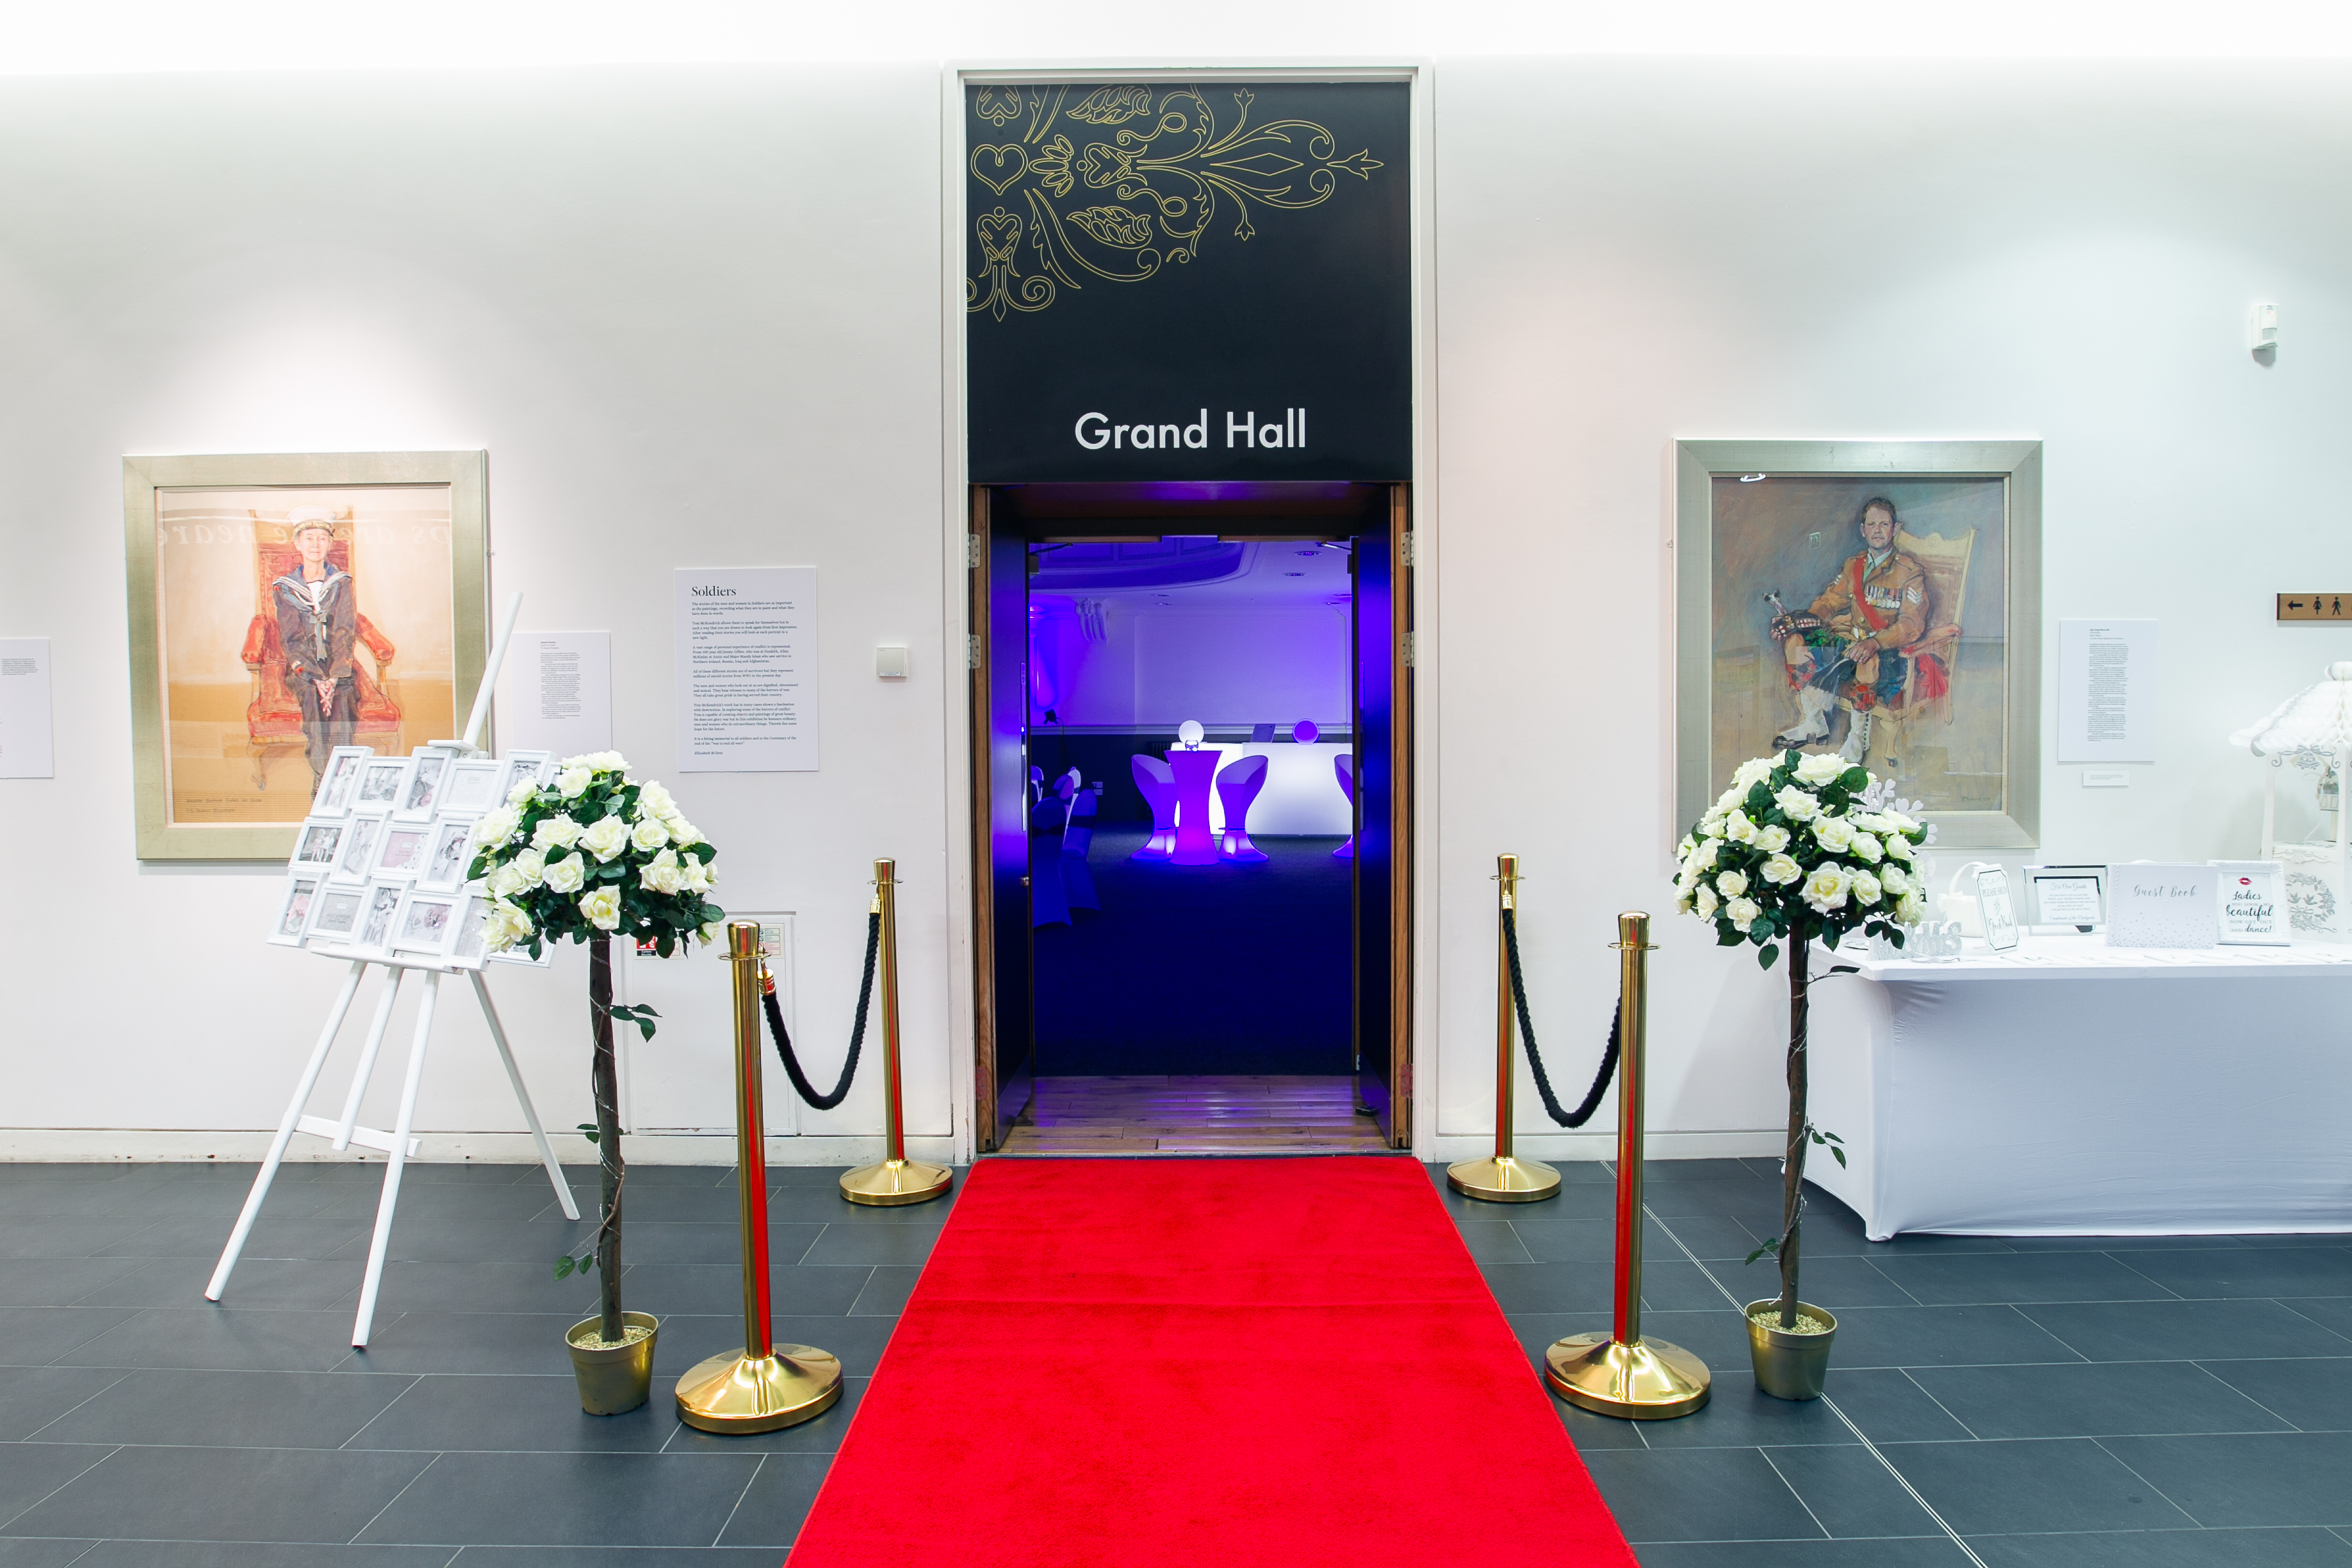 image of Entrance to Grand Hall